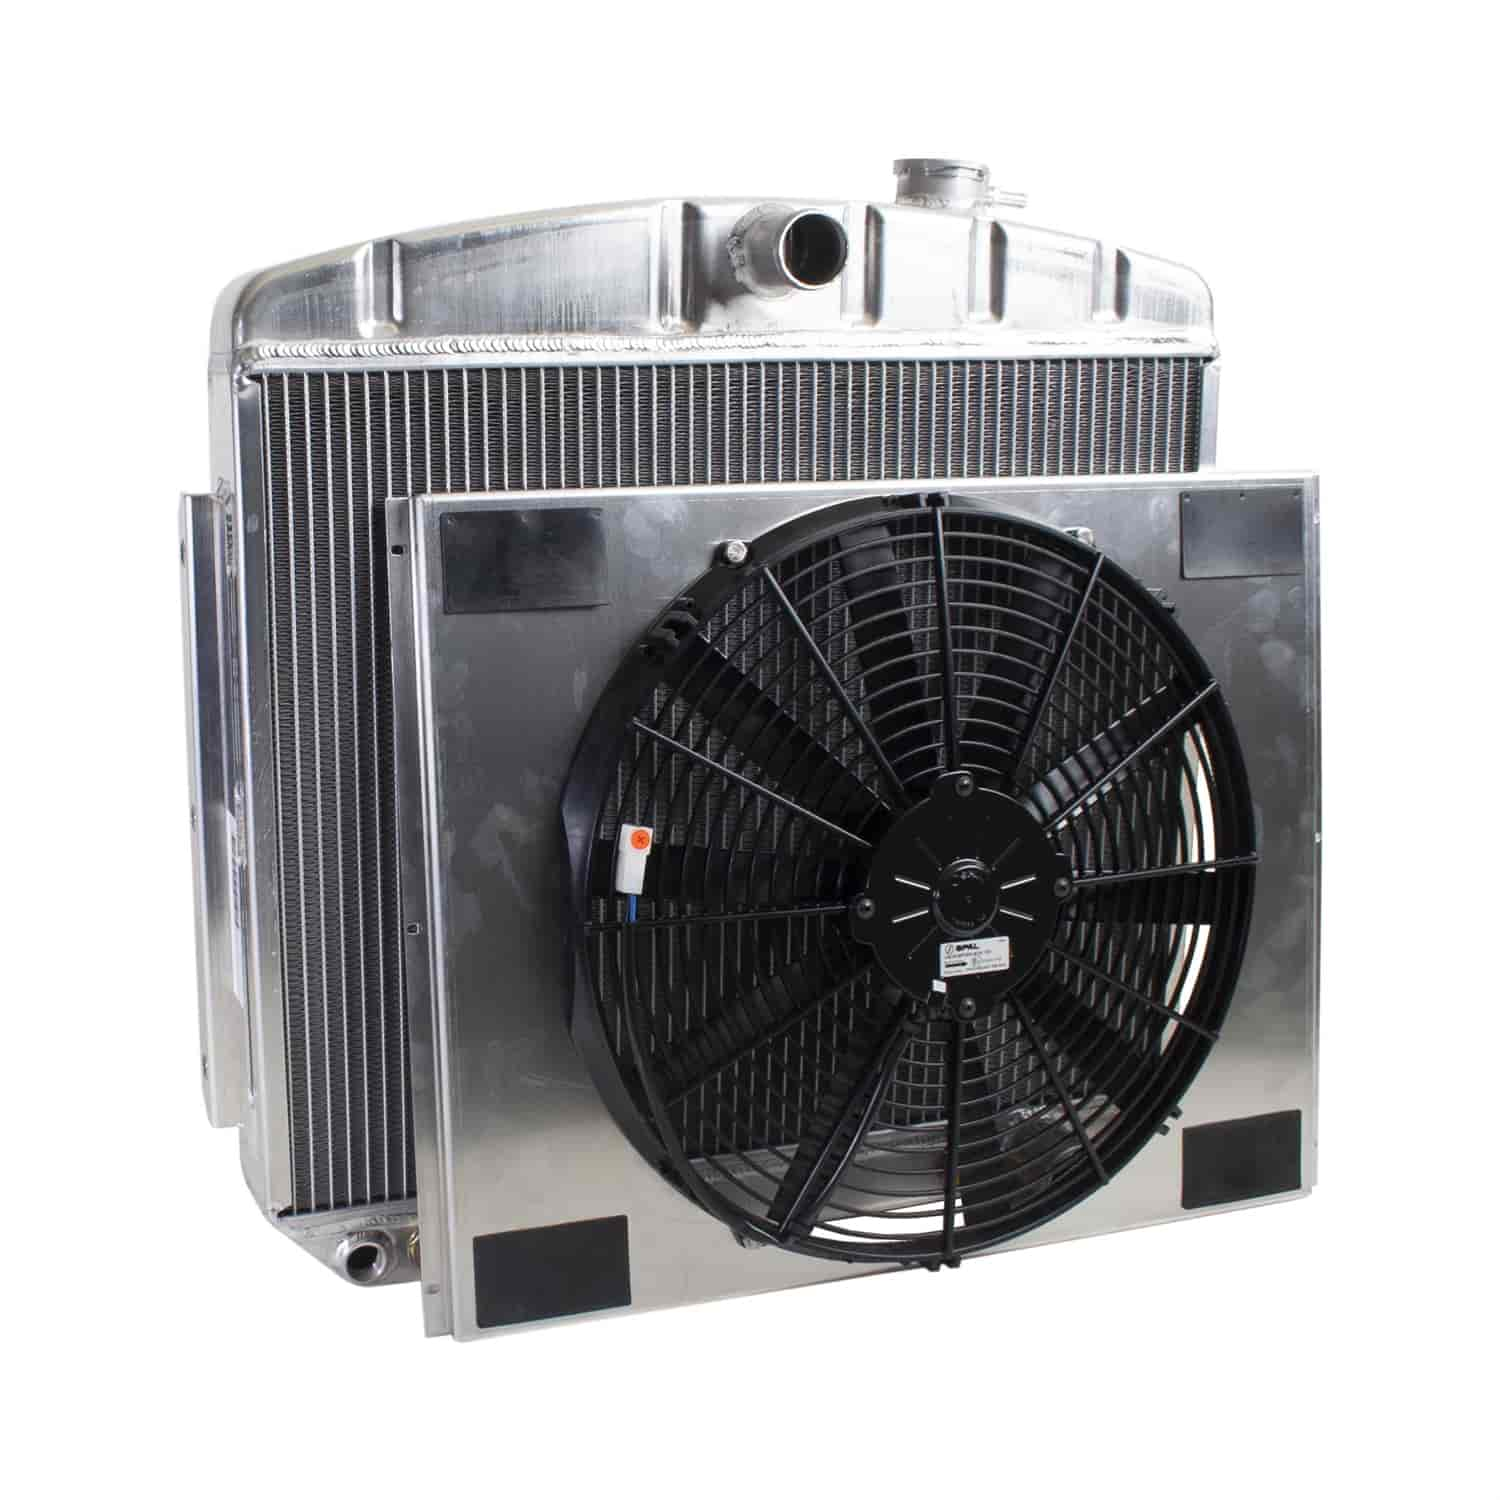 Griffin Radiators CU-70046